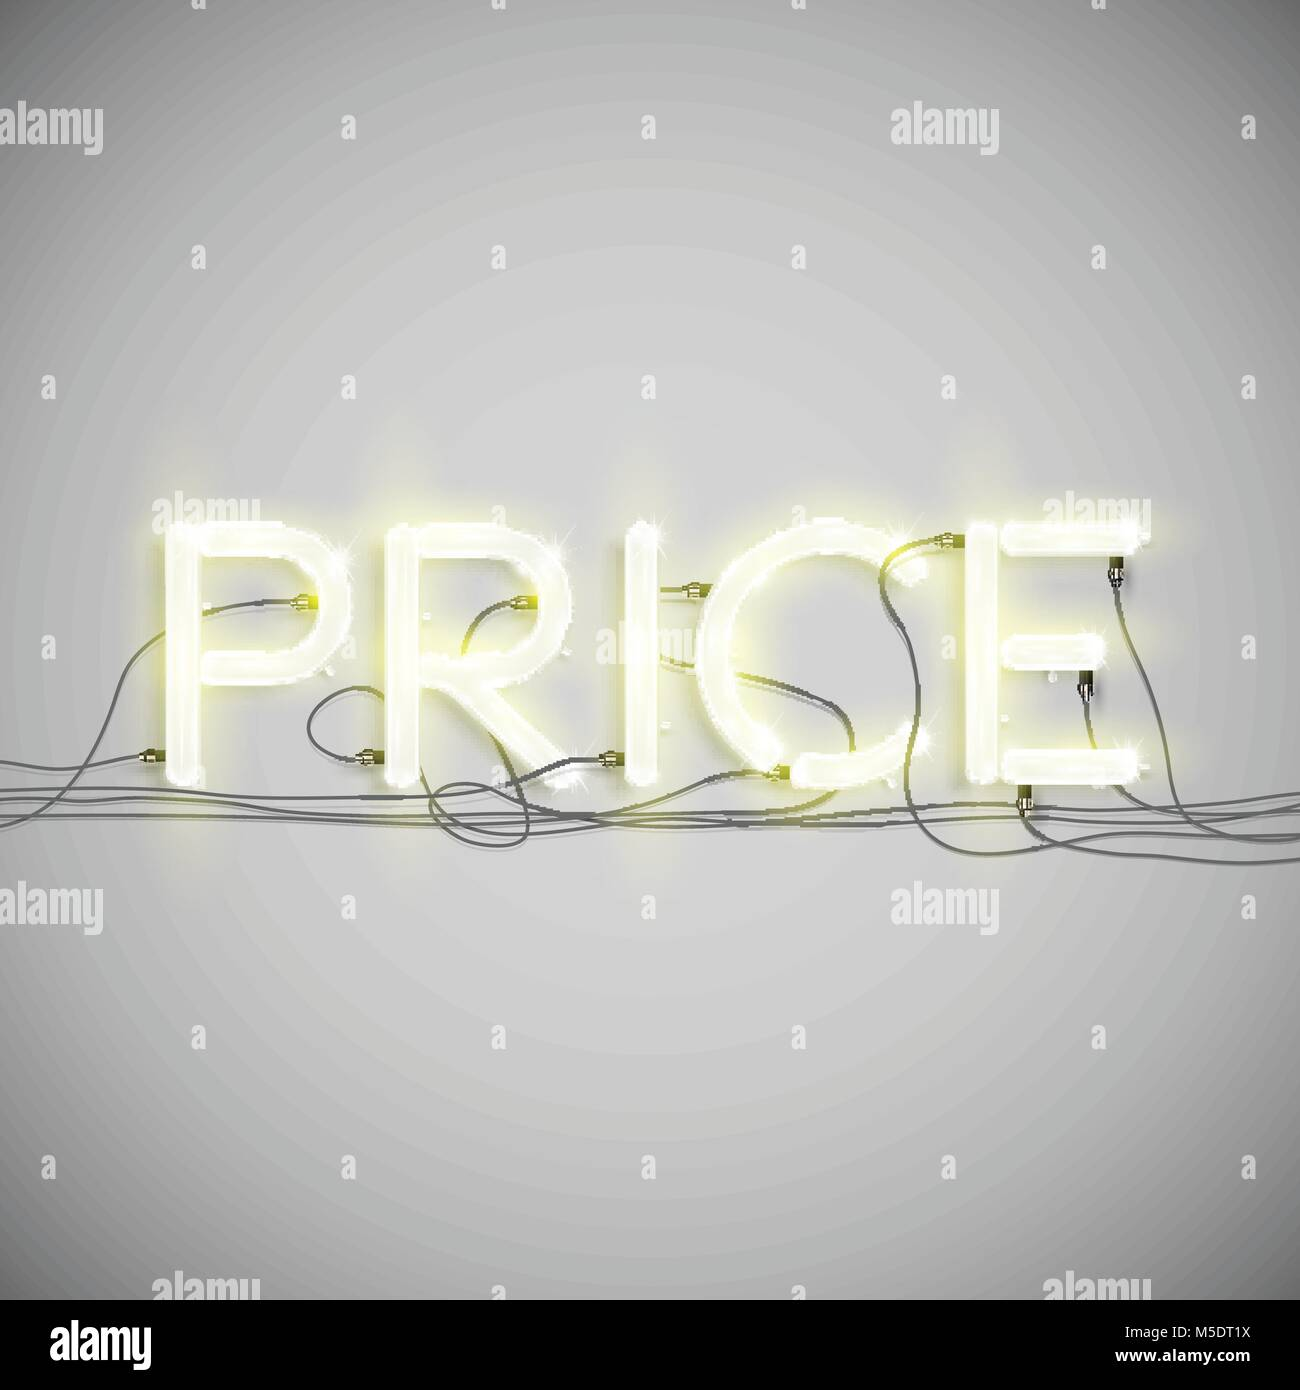 Capital Electric Wire Stock Vector Images - Alamy